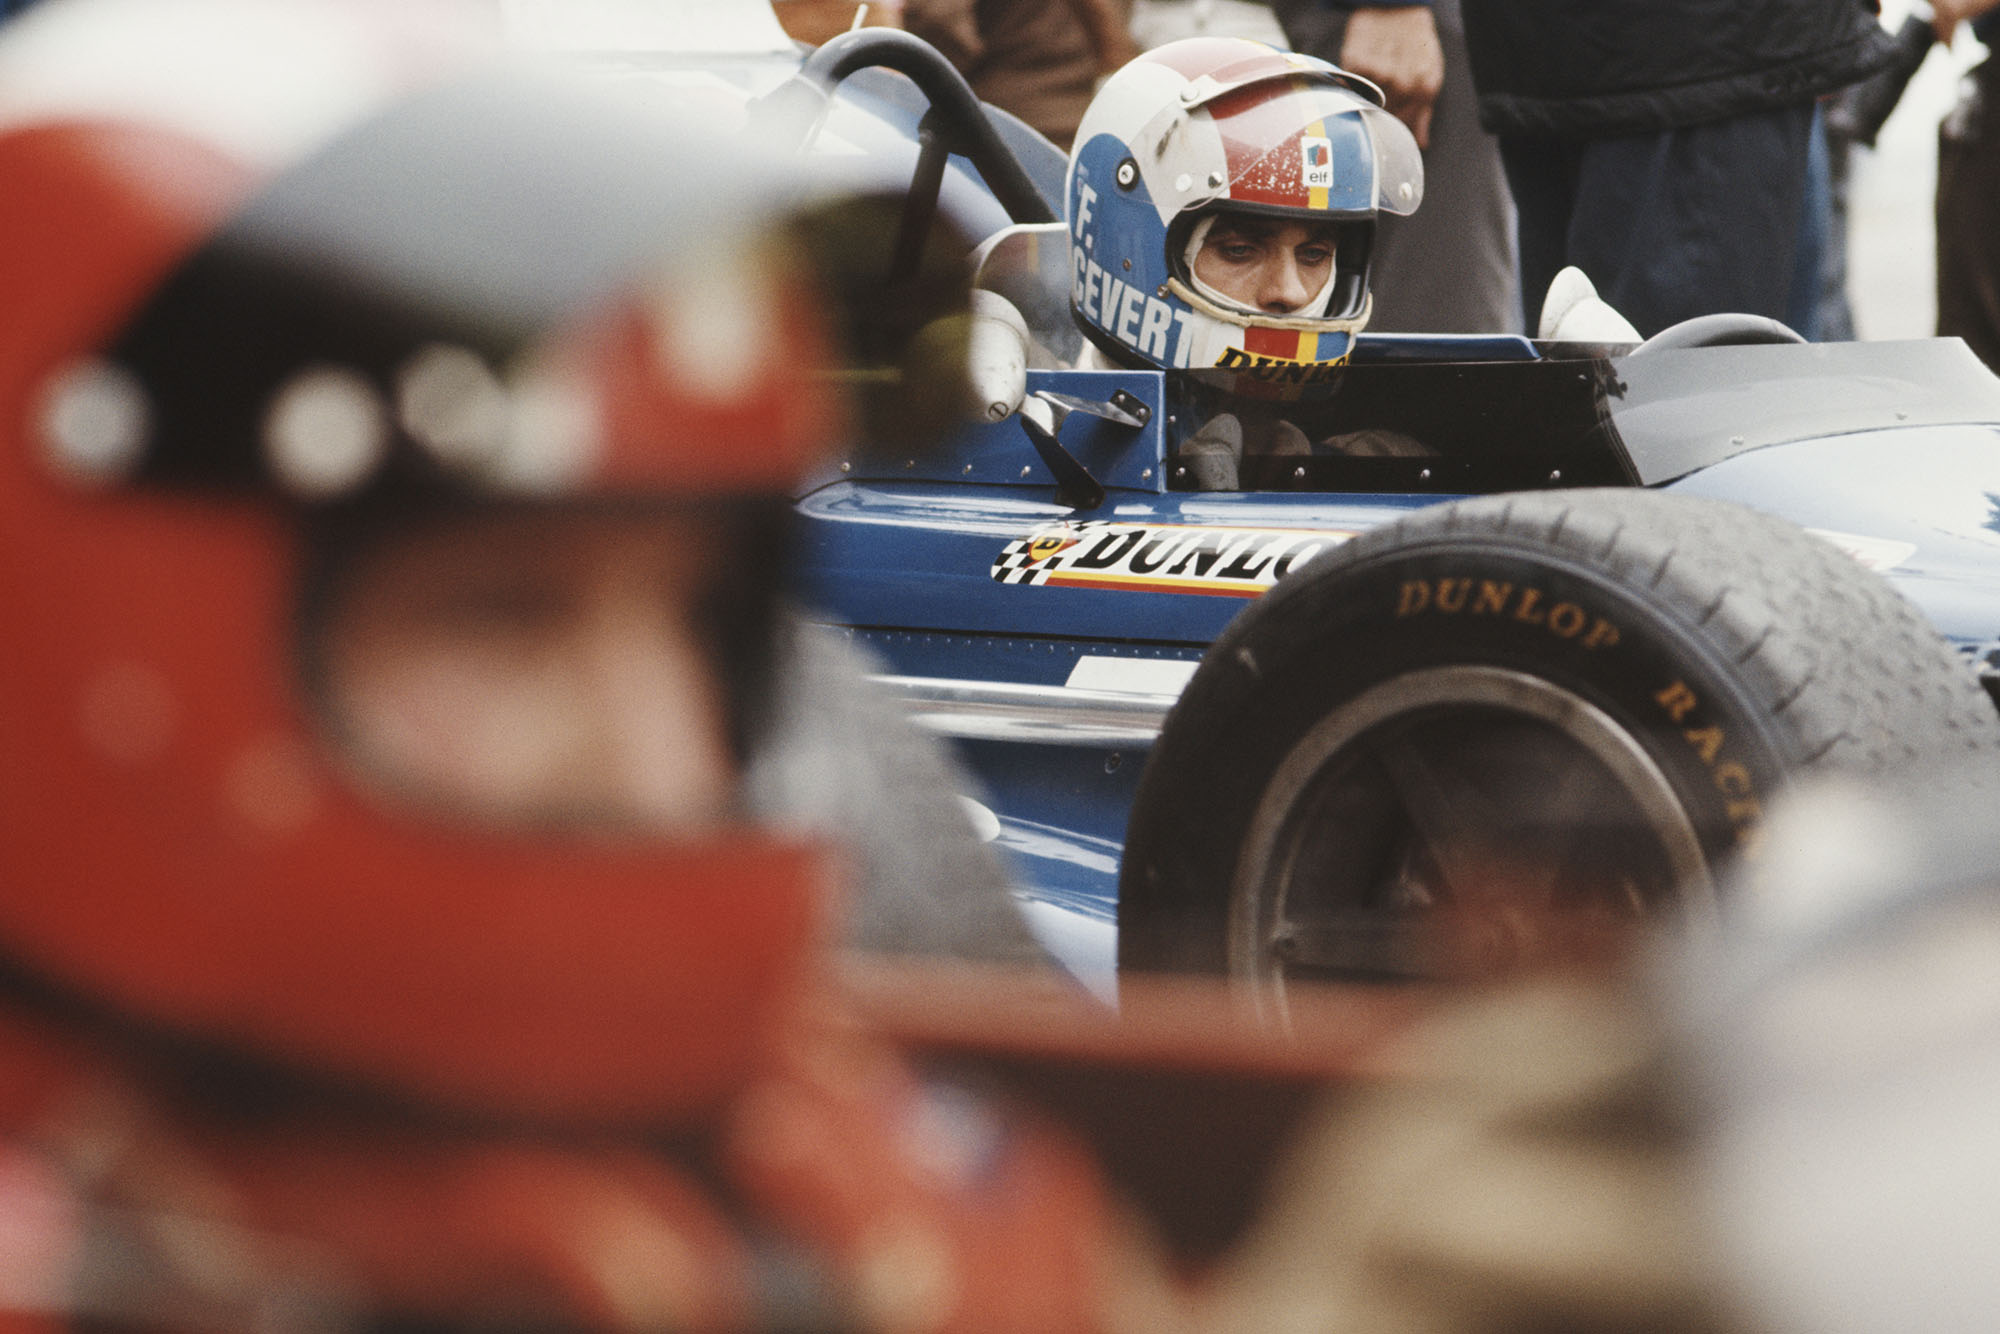 Tyrrell's Francois Cevert eyes the opposition on the starting grid at the 1970 Dutch Grand Prix